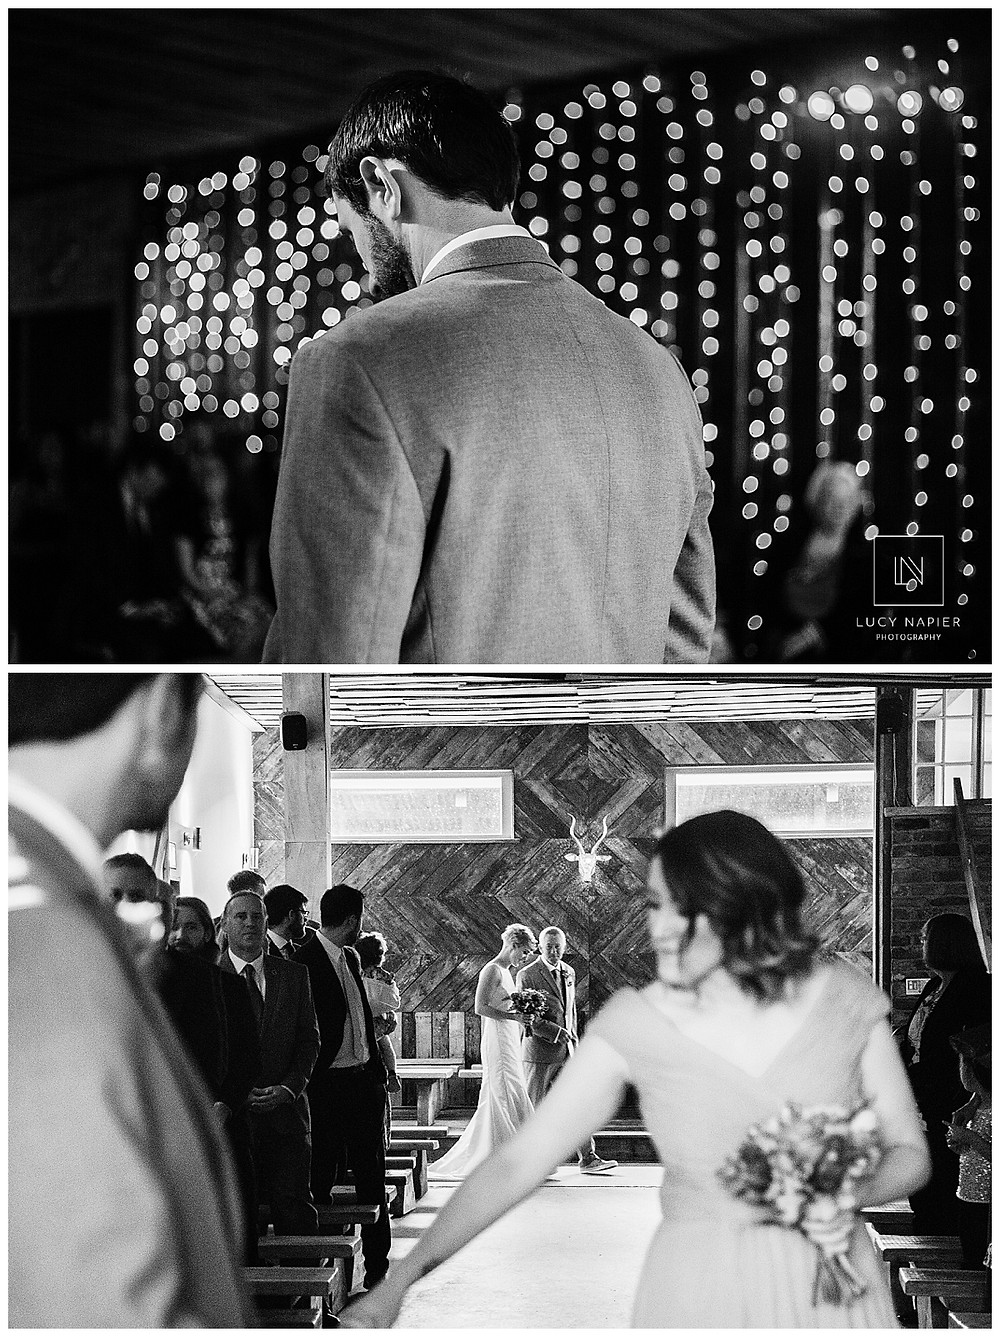 the groom Tex waits for his bride to walk down the aisle of Owen House Wedding Barn ceremony room black and white image